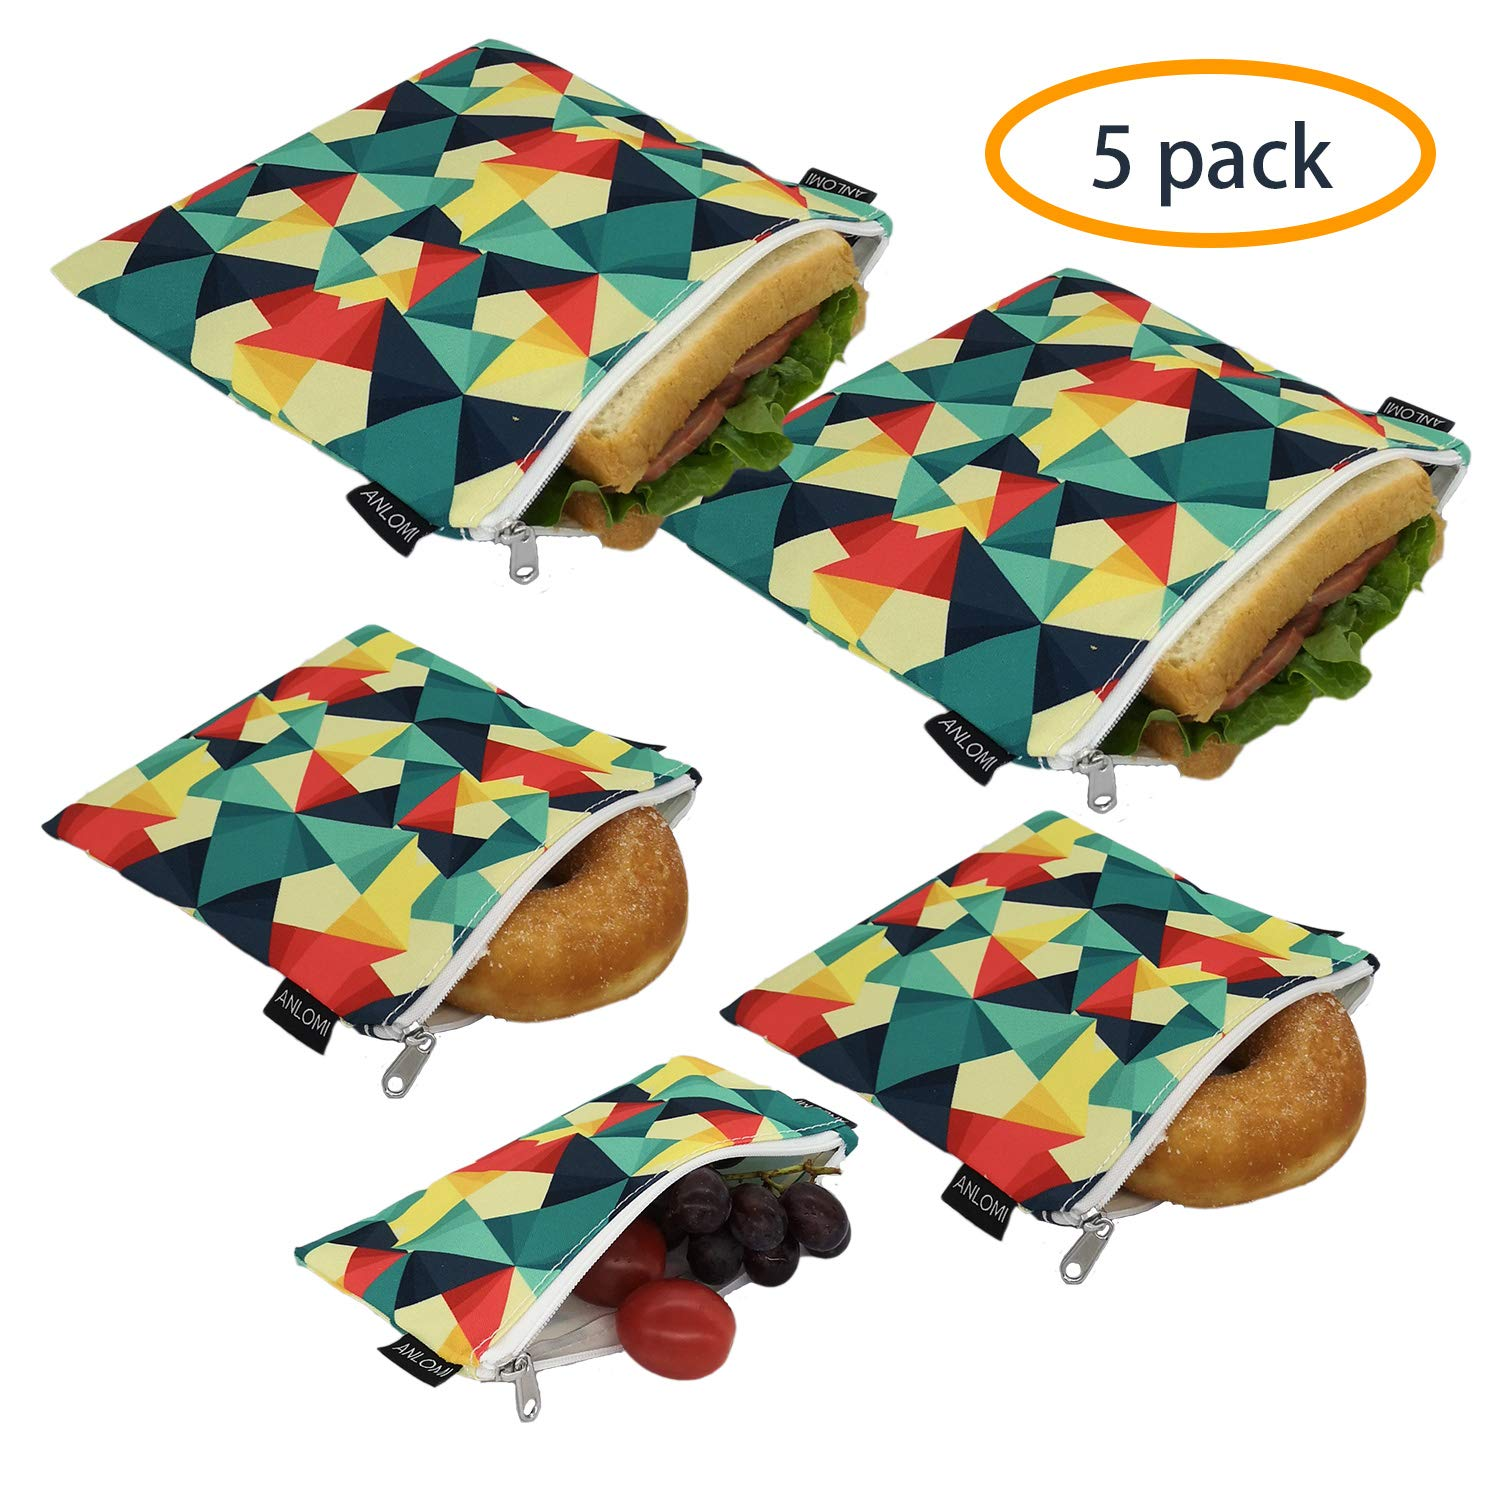 Reusable Sandwich Bags Snack Bags - Set of 5 Pack, Dishwasher Safe Lunch Bags with Zipper, Eco Friendly Food Wraps, BPA-Free. (Colorful)